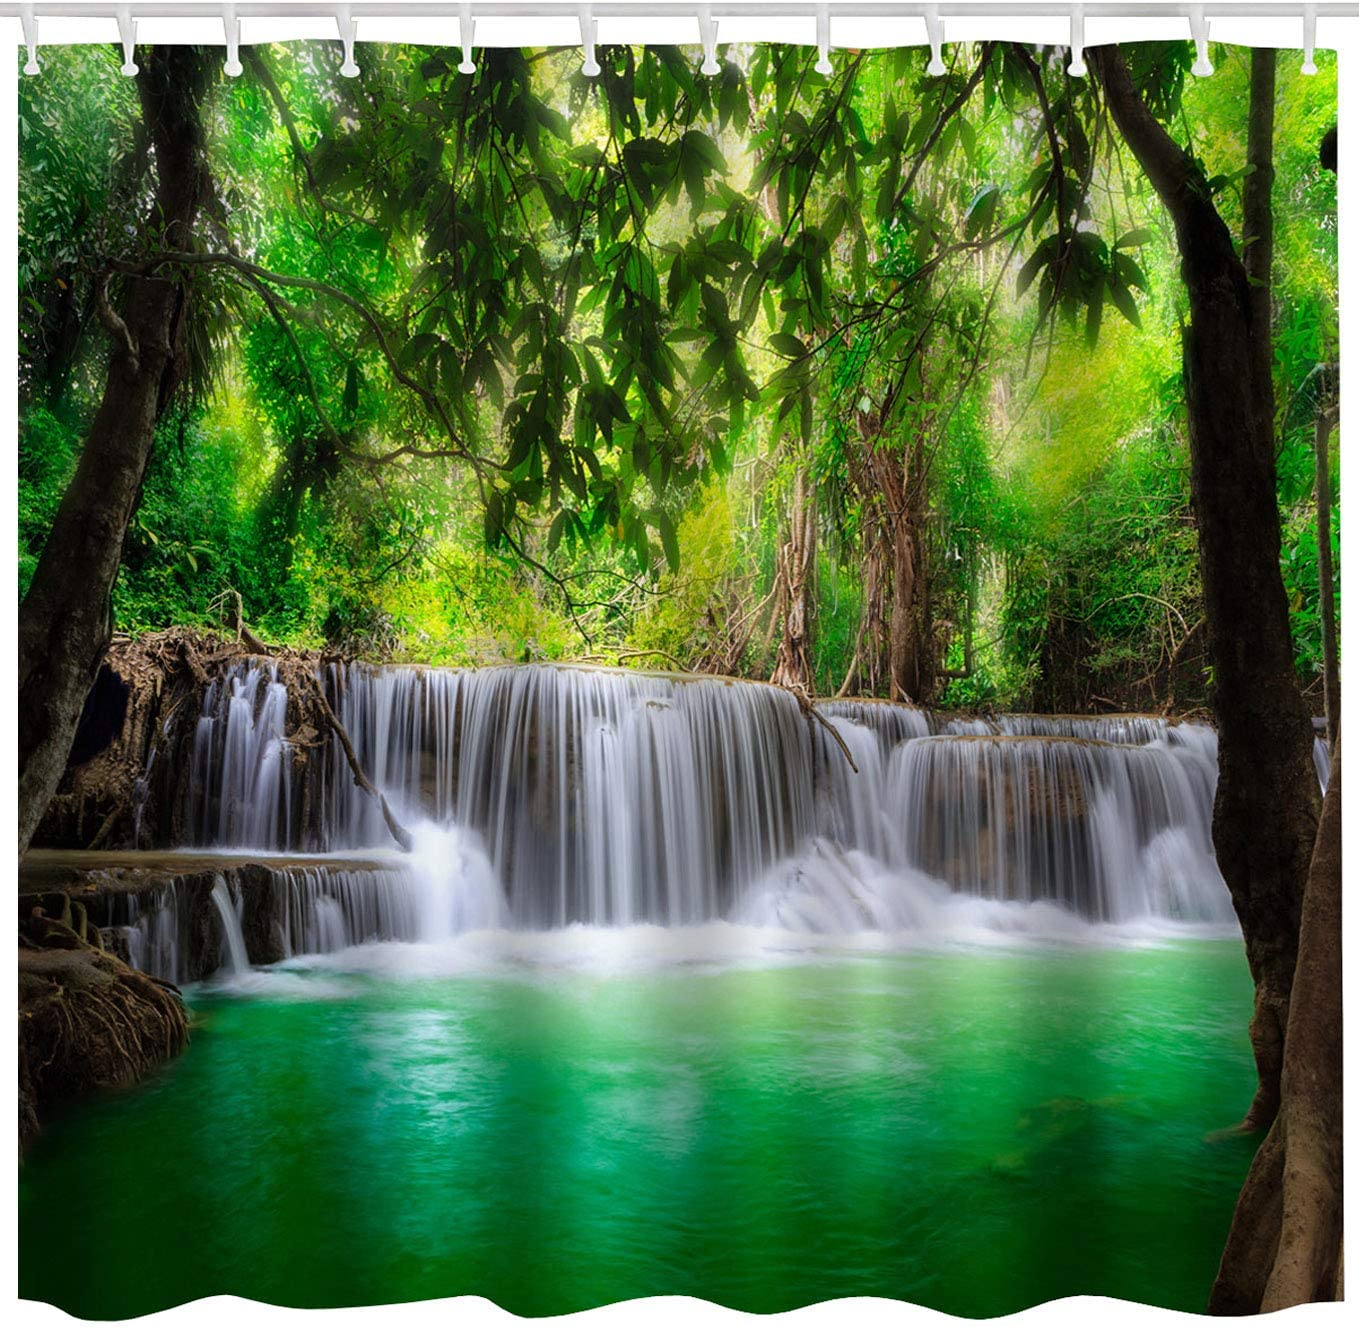 BROSHAN Green Landscape Shower Curtain Set, Tropical Waterfall in Forest Woodland Jungle Scenery Art Printing, Nature Waterproof Fabric Bathroom Decor Curtain with Hooks,Green Brown White, 72x 72 inch